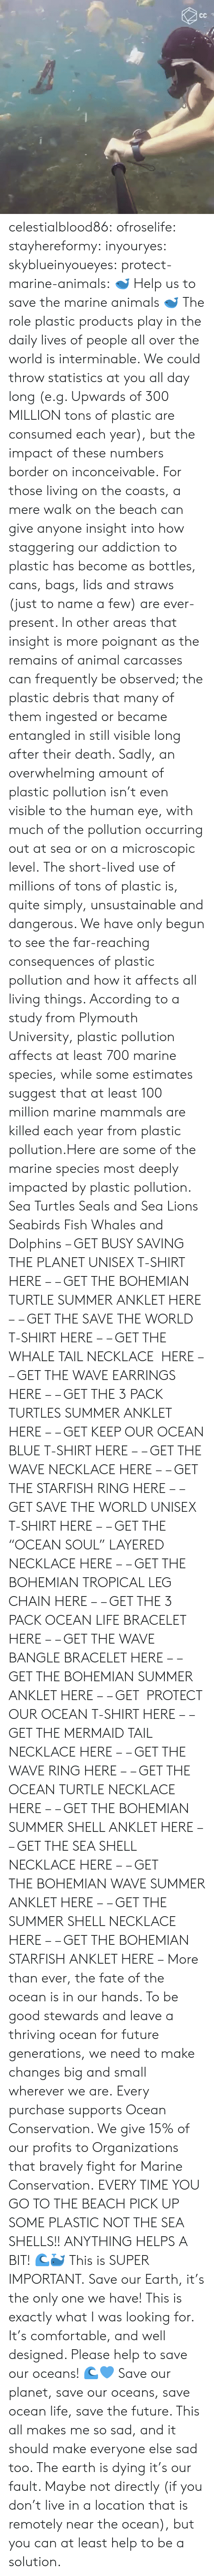 "inconceivable: celestialblood86:  ofroselife: stayhereformy:  inyouryes:  skyblueinyoueyes:  protect-marine-animals:  🐋 Help us to save the marine animals 🐋 The role plastic products play in the daily lives of people all over the world is interminable. We could throw statistics at you all day long (e.g. Upwards of 300 MILLION tons of plastic are consumed each year), but the impact of these numbers border on inconceivable. For those living on the coasts, a mere walk on the beach can give anyone insight into how staggering our addiction to plastic has become as bottles, cans, bags, lids and straws (just to name a few) are ever-present. In other areas that insight is more poignant as the remains of animal carcasses can frequently be observed; the plastic debris that many of them ingested or became entangled in still visible long after their death. Sadly, an overwhelming amount of plastic pollution isn't even visible to the human eye, with much of the pollution occurring out at sea or on a microscopic level. The short-lived use of millions of tons of plastic is, quite simply, unsustainable and dangerous. We have only begun to see the far-reaching consequences of plastic pollution and how it affects all living things. According to a study from Plymouth University, plastic pollution affects at least 700 marine species, while some estimates suggest that at least 100 million marine mammals are killed each year from plastic pollution.Here are some of the marine species most deeply impacted by plastic pollution. Sea Turtles Seals and Sea Lions Seabirds Fish Whales and Dolphins – GET BUSY SAVING THE PLANET UNISEX T-SHIRT HERE – – GET THE BOHEMIAN TURTLE SUMMER ANKLET HERE – – GET THE SAVE THE WORLD T-SHIRT HERE – – GET THE WHALE TAIL NECKLACE  HERE – – GET THE WAVE EARRINGS HERE – – GET THE 3 PACK TURTLES SUMMER ANKLET HERE – – GET KEEP OUR OCEAN BLUE T-SHIRT HERE – – GET THE WAVE NECKLACE HERE – – GET THE STARFISH RING HERE – – GET SAVE THE WORLD UNISEX T-SHIRT HERE – – GET THE ""OCEAN SOUL"" LAYERED NECKLACE HERE – – GET THE BOHEMIAN TROPICAL LEG CHAIN HERE – – GET THE 3 PACK OCEAN LIFE BRACELET HERE – – GET THE WAVE BANGLE BRACELET HERE – – GET THE BOHEMIAN SUMMER ANKLET HERE – – GET  PROTECT OUR OCEAN T-SHIRT HERE – – GET THE MERMAID TAIL NECKLACE HERE – – GET THE WAVE RING HERE – – GET THE OCEAN TURTLE NECKLACE HERE – – GET THE BOHEMIAN SUMMER SHELL ANKLET HERE – – GET THE SEA SHELL NECKLACE HERE – – GET THE BOHEMIAN WAVE SUMMER ANKLET HERE – – GET THE SUMMER SHELL NECKLACE HERE – – GET THE BOHEMIAN STARFISH ANKLET HERE – More than ever, the fate of the ocean is in our hands. To be good stewards and leave a thriving ocean for future generations, we need to make changes big and small wherever we are. Every purchase supports Ocean Conservation. We give 15% of our profits to Organizations that bravely fight for Marine Conservation.  EVERY TIME YOU GO TO THE BEACH PICK UP SOME PLASTIC NOT THE SEA SHELLS!! ANYTHING HELPS A BIT! 🌊🐳  This is SUPER IMPORTANT.  Save our Earth, it's the only one we have!  This is exactly what I was looking for. It's comfortable, and well designed. Please help to save our oceans! 🌊💙  Save our planet, save our oceans, save ocean life, save the future. This all makes me so sad, and it should make everyone else sad too. The earth is dying it's our fault. Maybe not directly (if you don't live in a location that is remotely near the ocean), but you can at least help to be a solution."